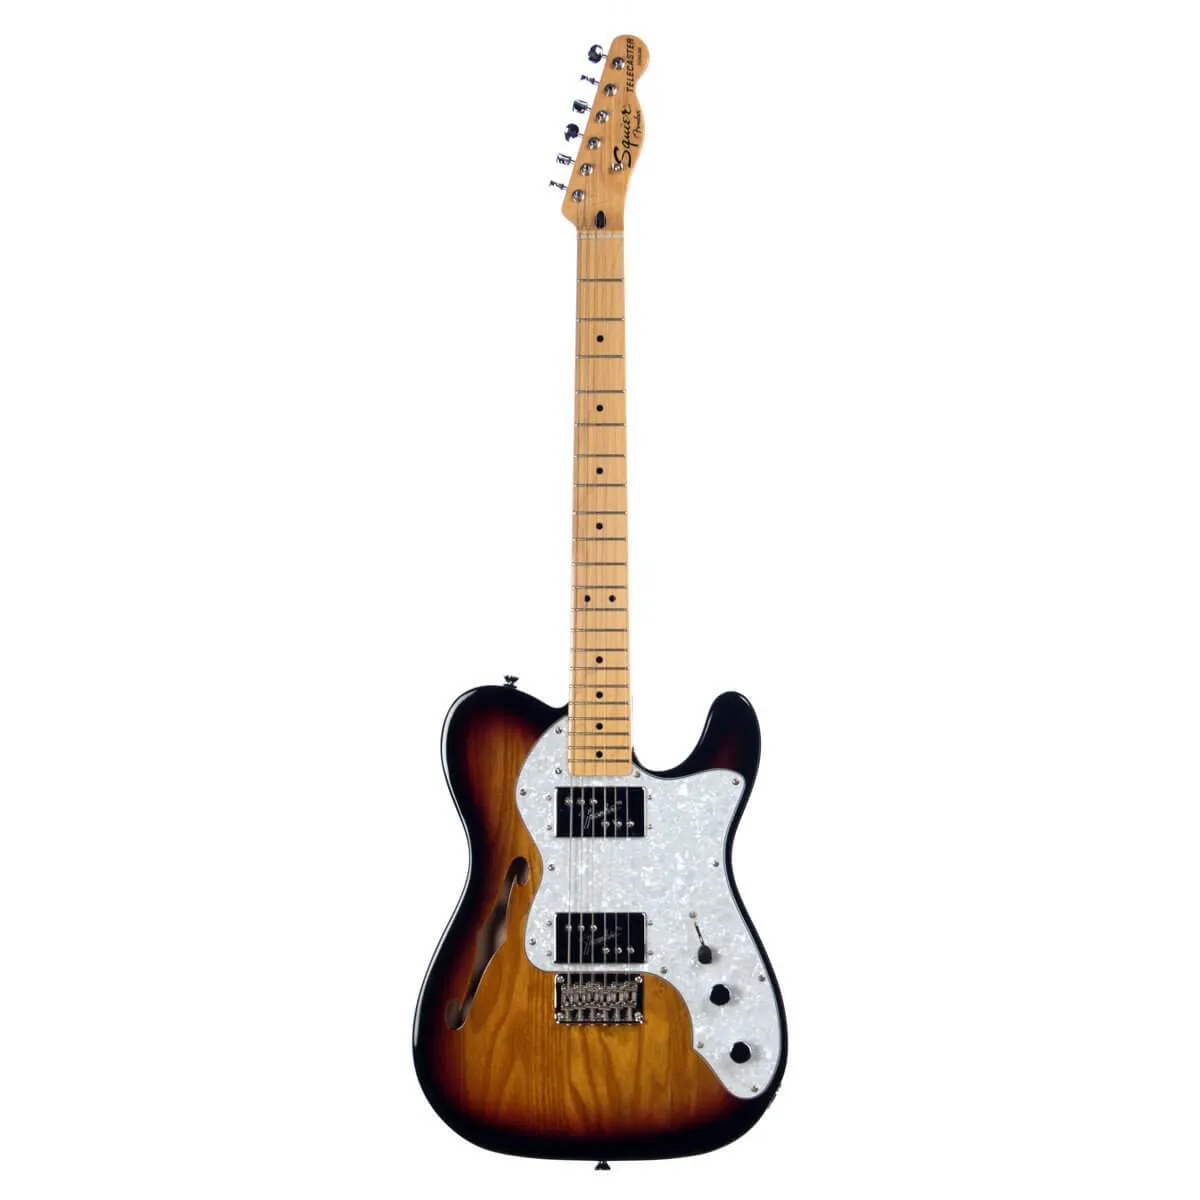 Guitarra Fender Squier Vintage Modified Telecaster Thinline 72 Sunburst